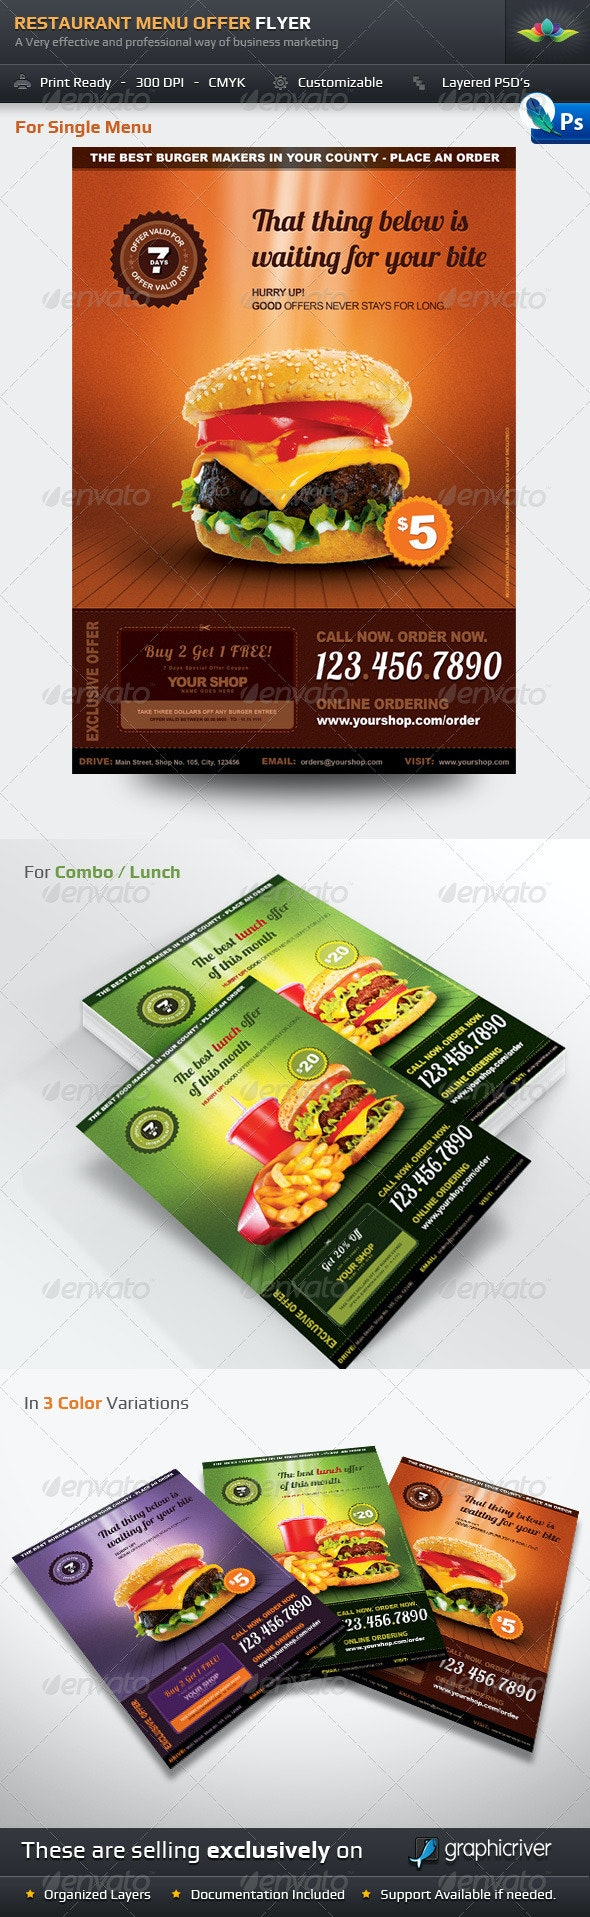 Restaurant Menu Offer Flyer - Restaurant Flyers